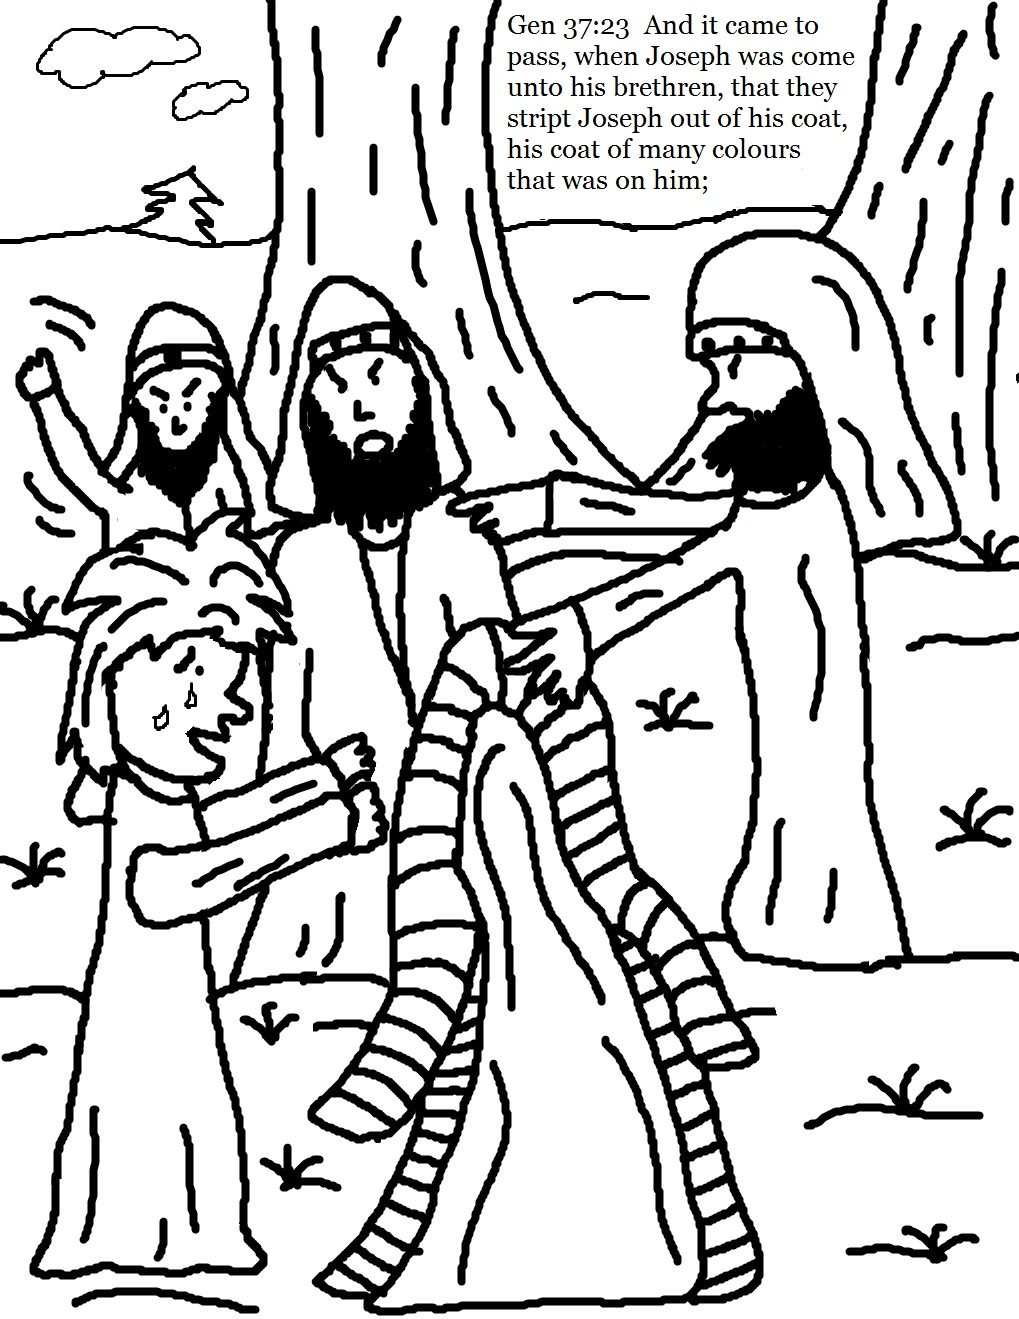 printable coloring pages joseph coat josephs coat of colors